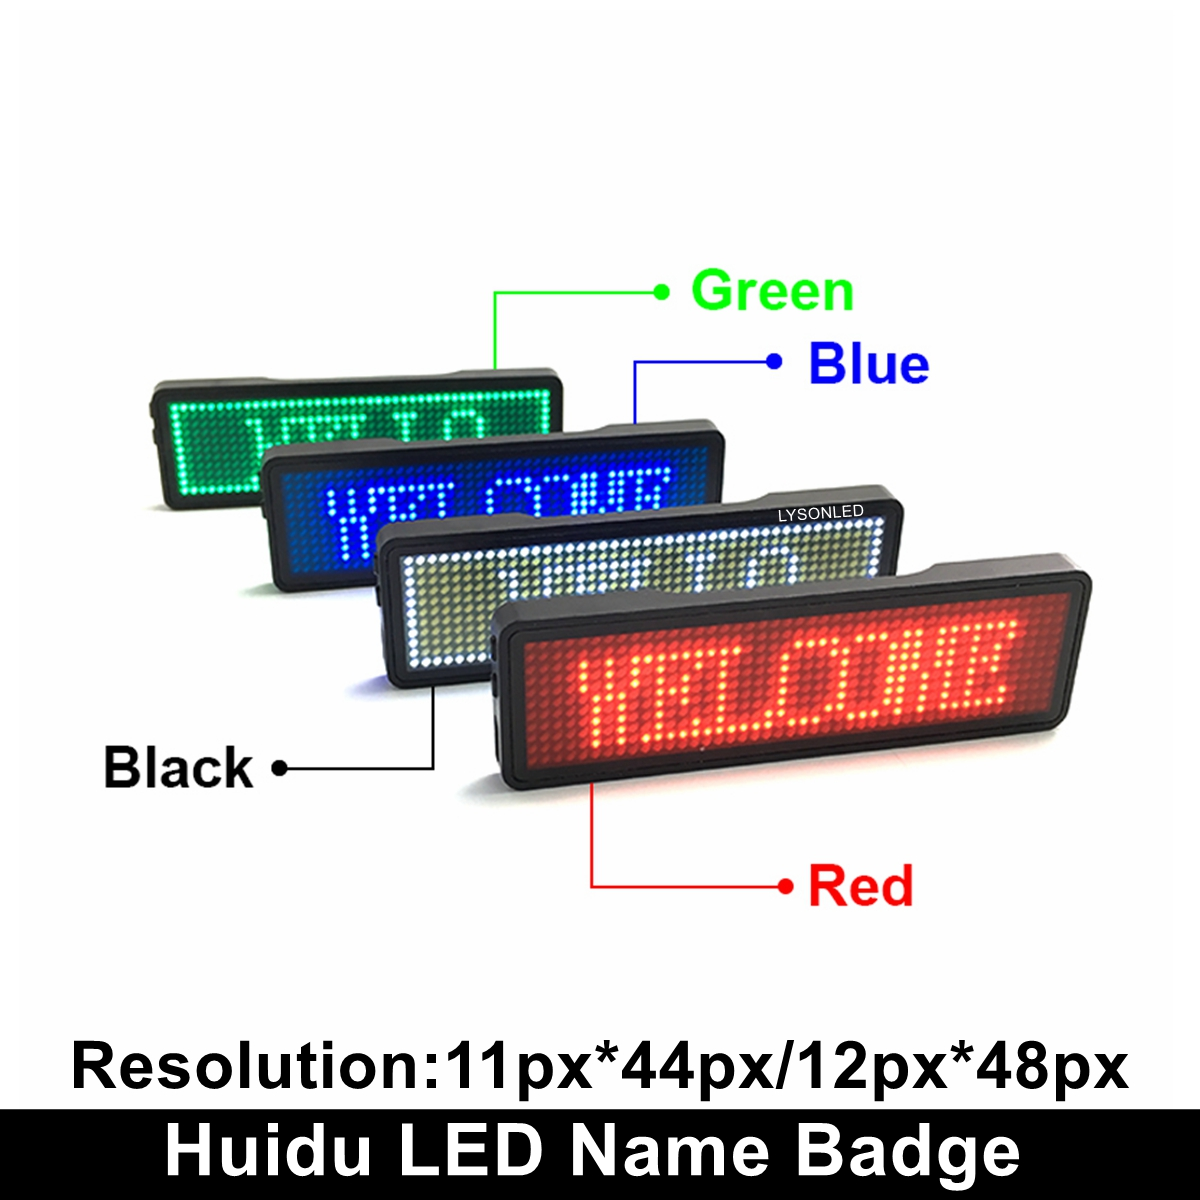 x 11 2 44x - LYSONLED Red Color Scrolling Message Led Name Badge , 44x11 /48x12 Dots Single Color Rechargeable Led Name Tag For Event